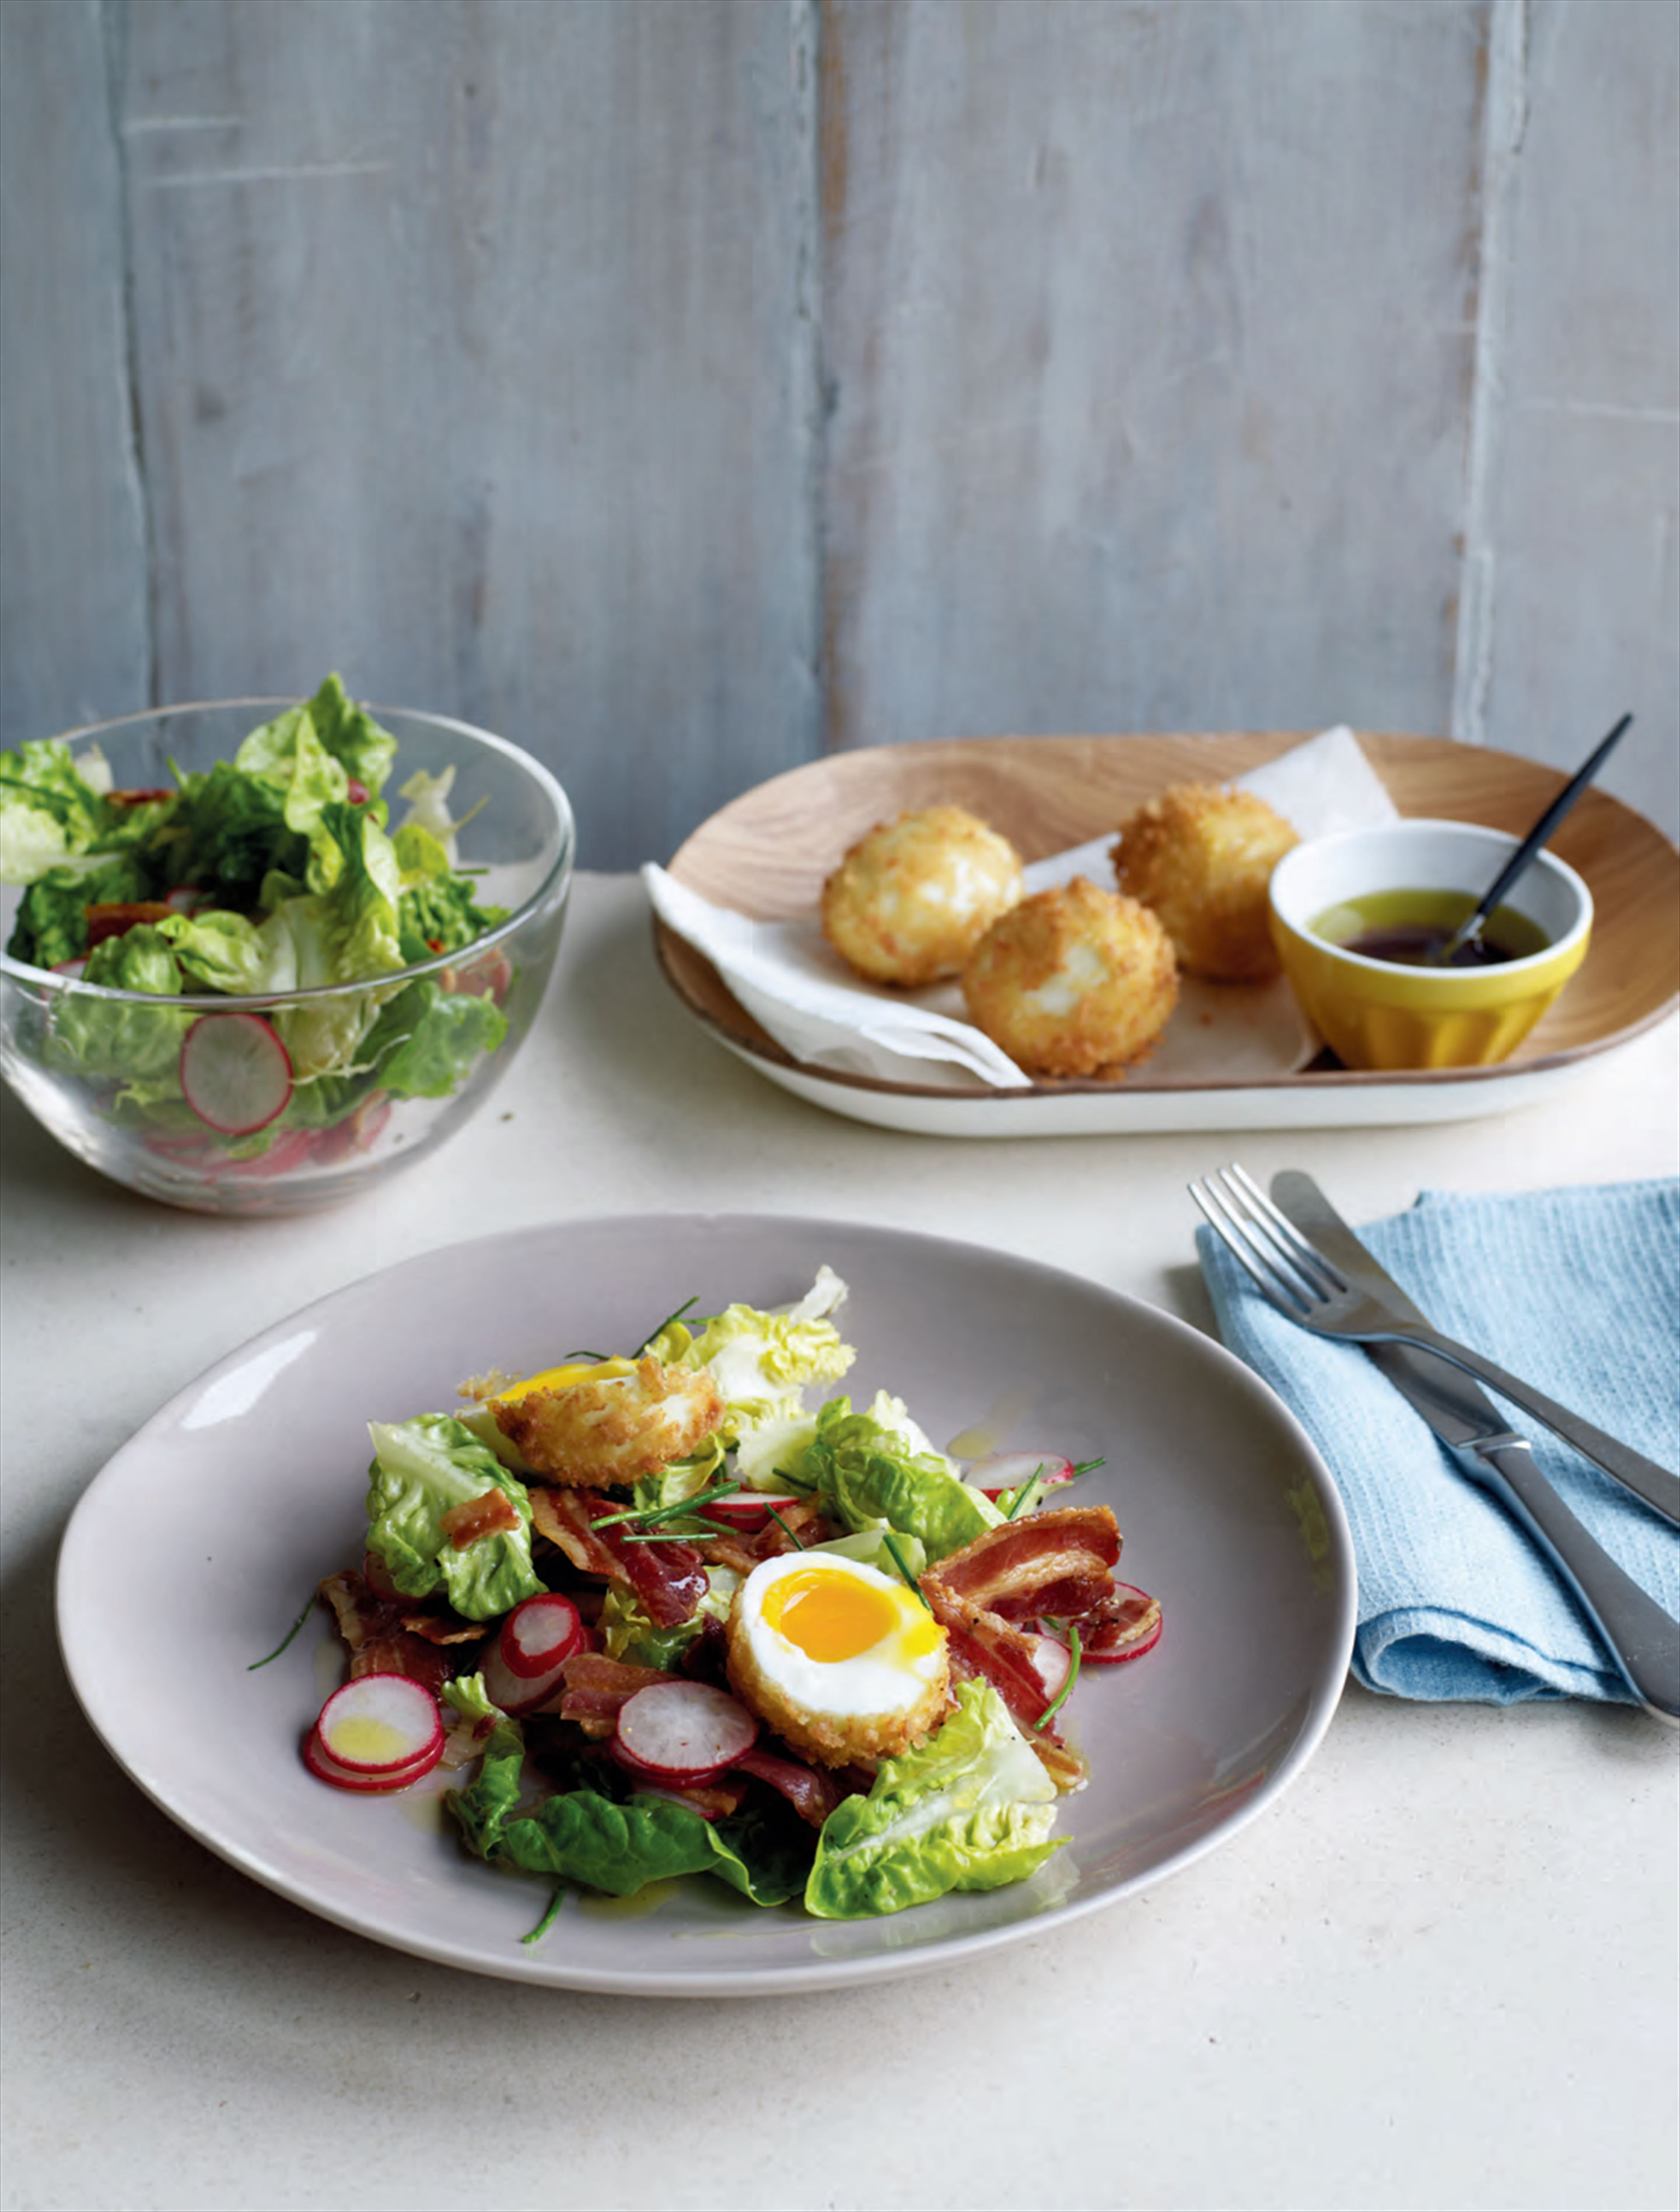 Deep-fried soft-boiled egg with crispy bacon salad